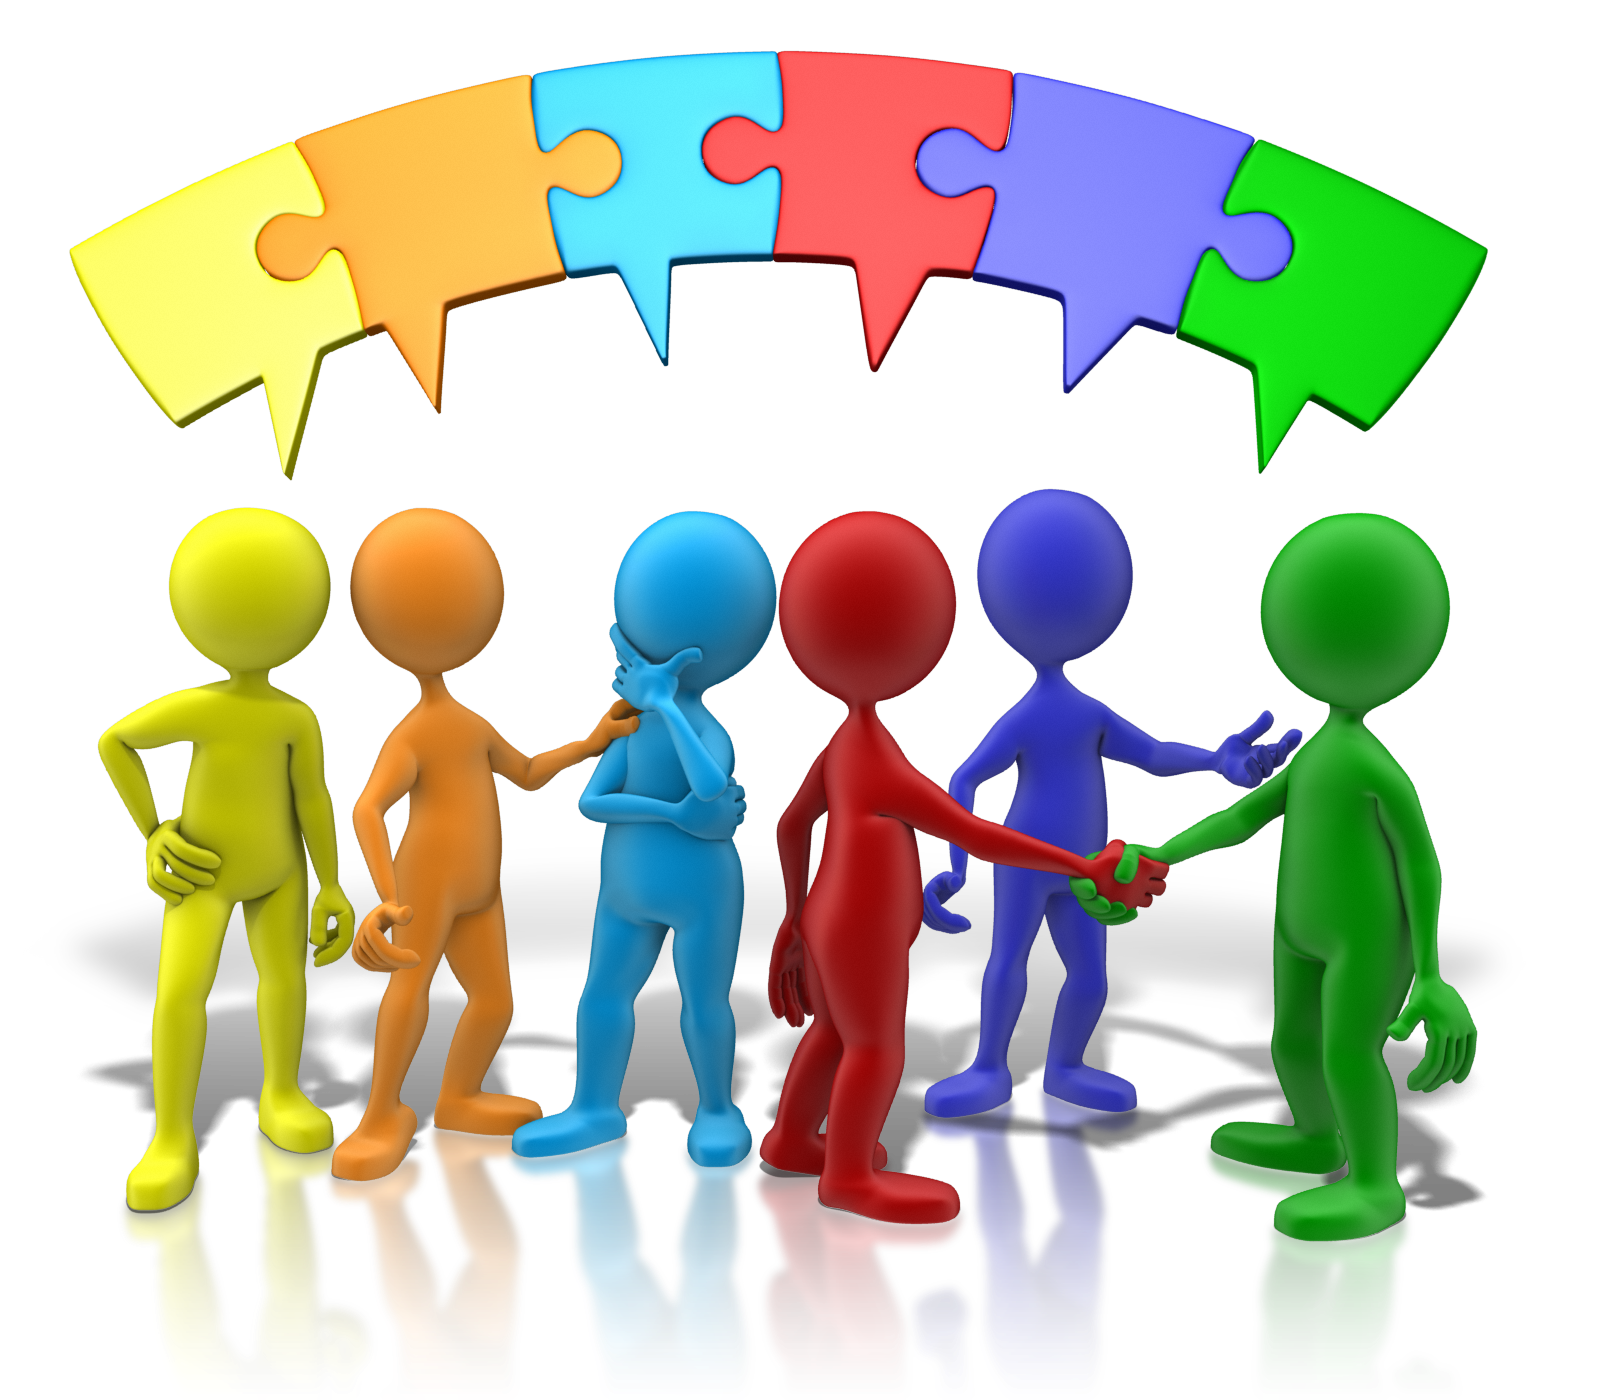 Collaboration clipart interpersonal relationship. Umd psyc e news